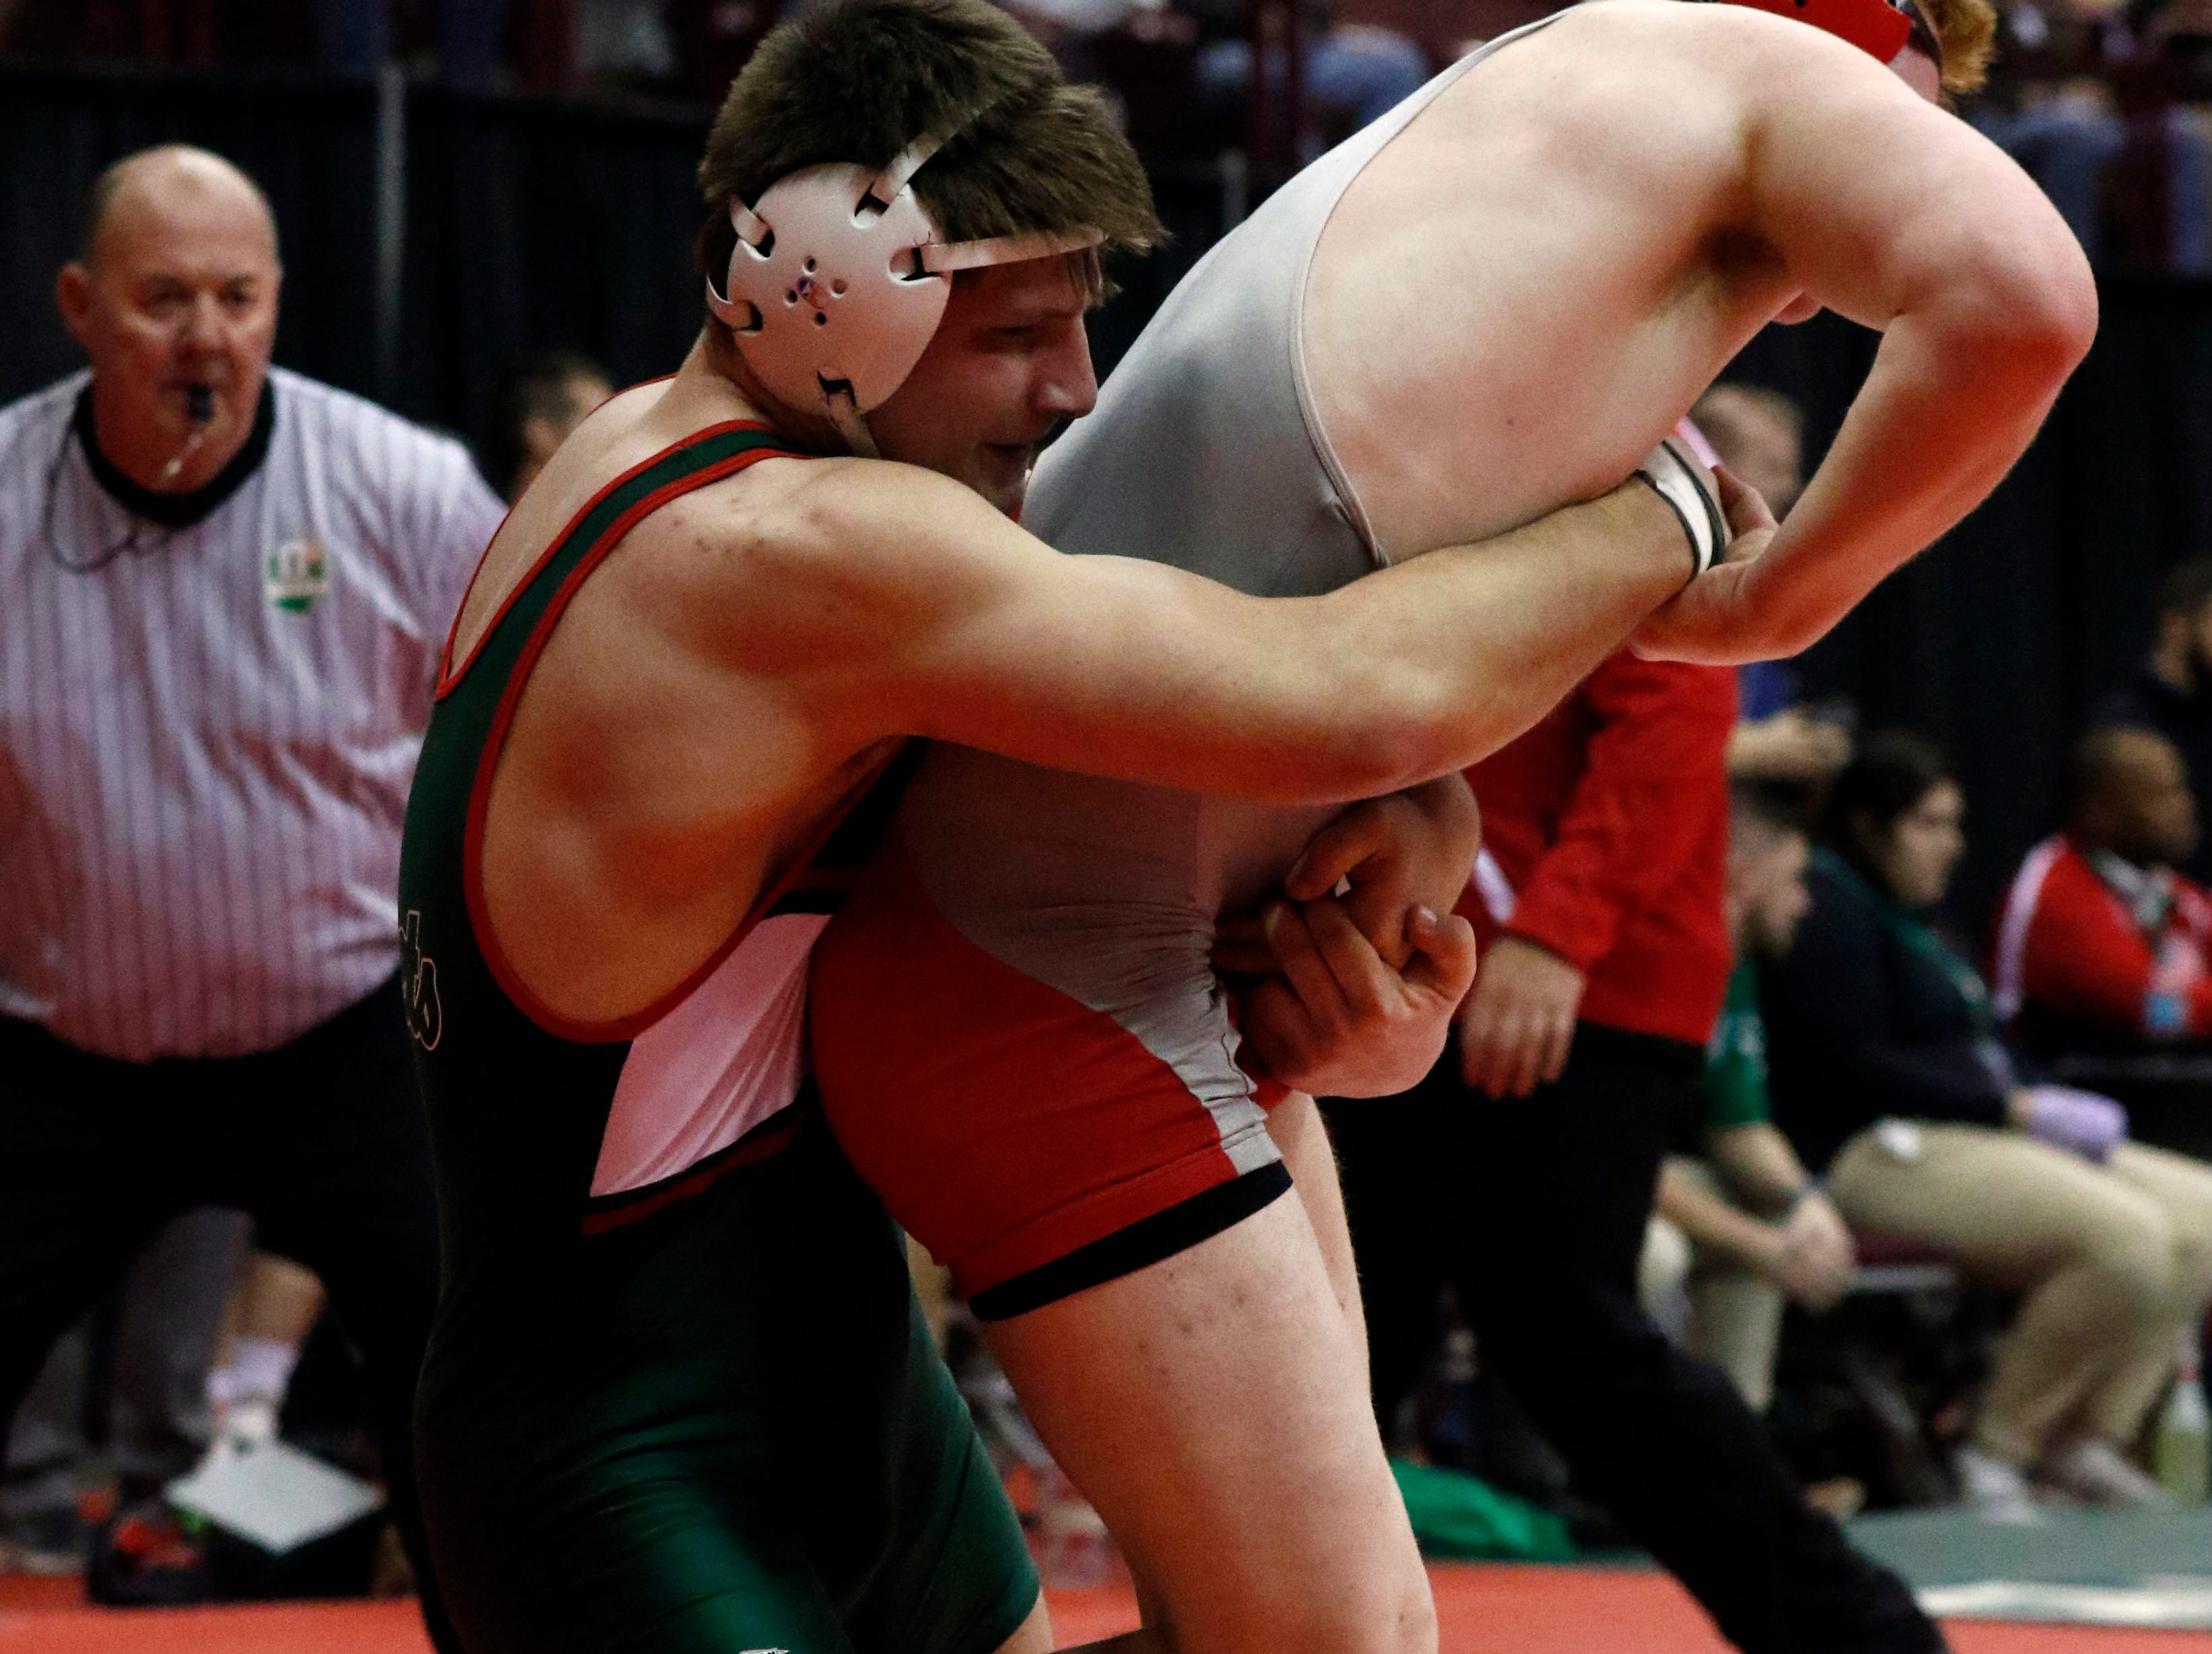 Oak Harbor's Jake Sage wrestles during the State Wrestling Tournament Thursday, March 7, 2019, at the Jerome Schottenstein Center at Ohio State University in Columbus.